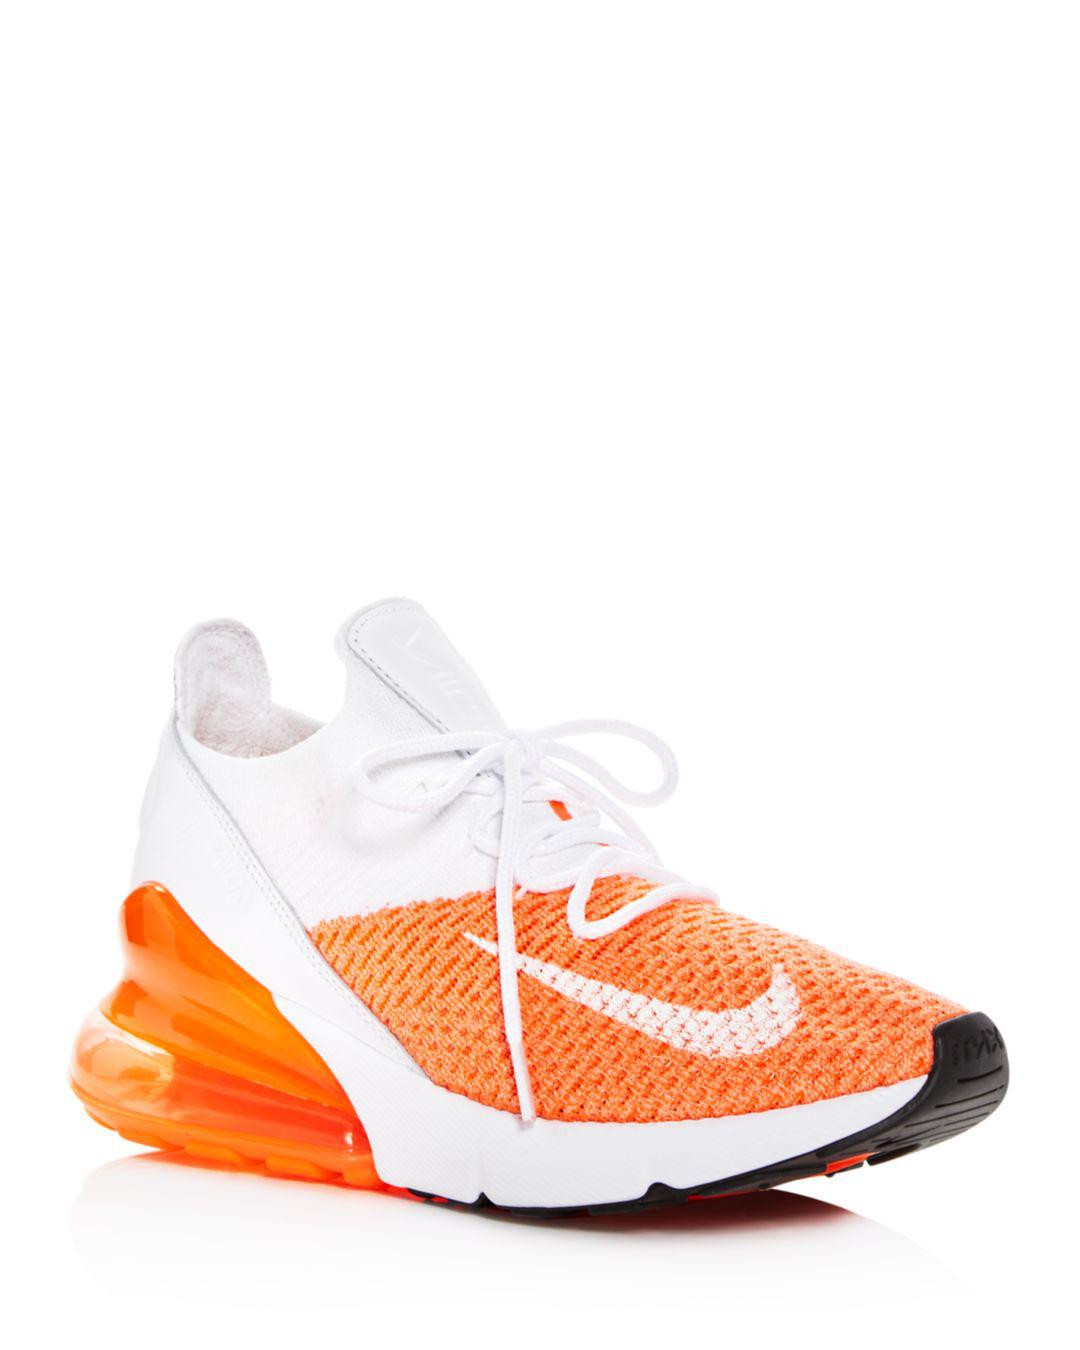 reputable site 76562 84951 Nike White Women's Air Max 270 Flyknit Lace Up Sneakers